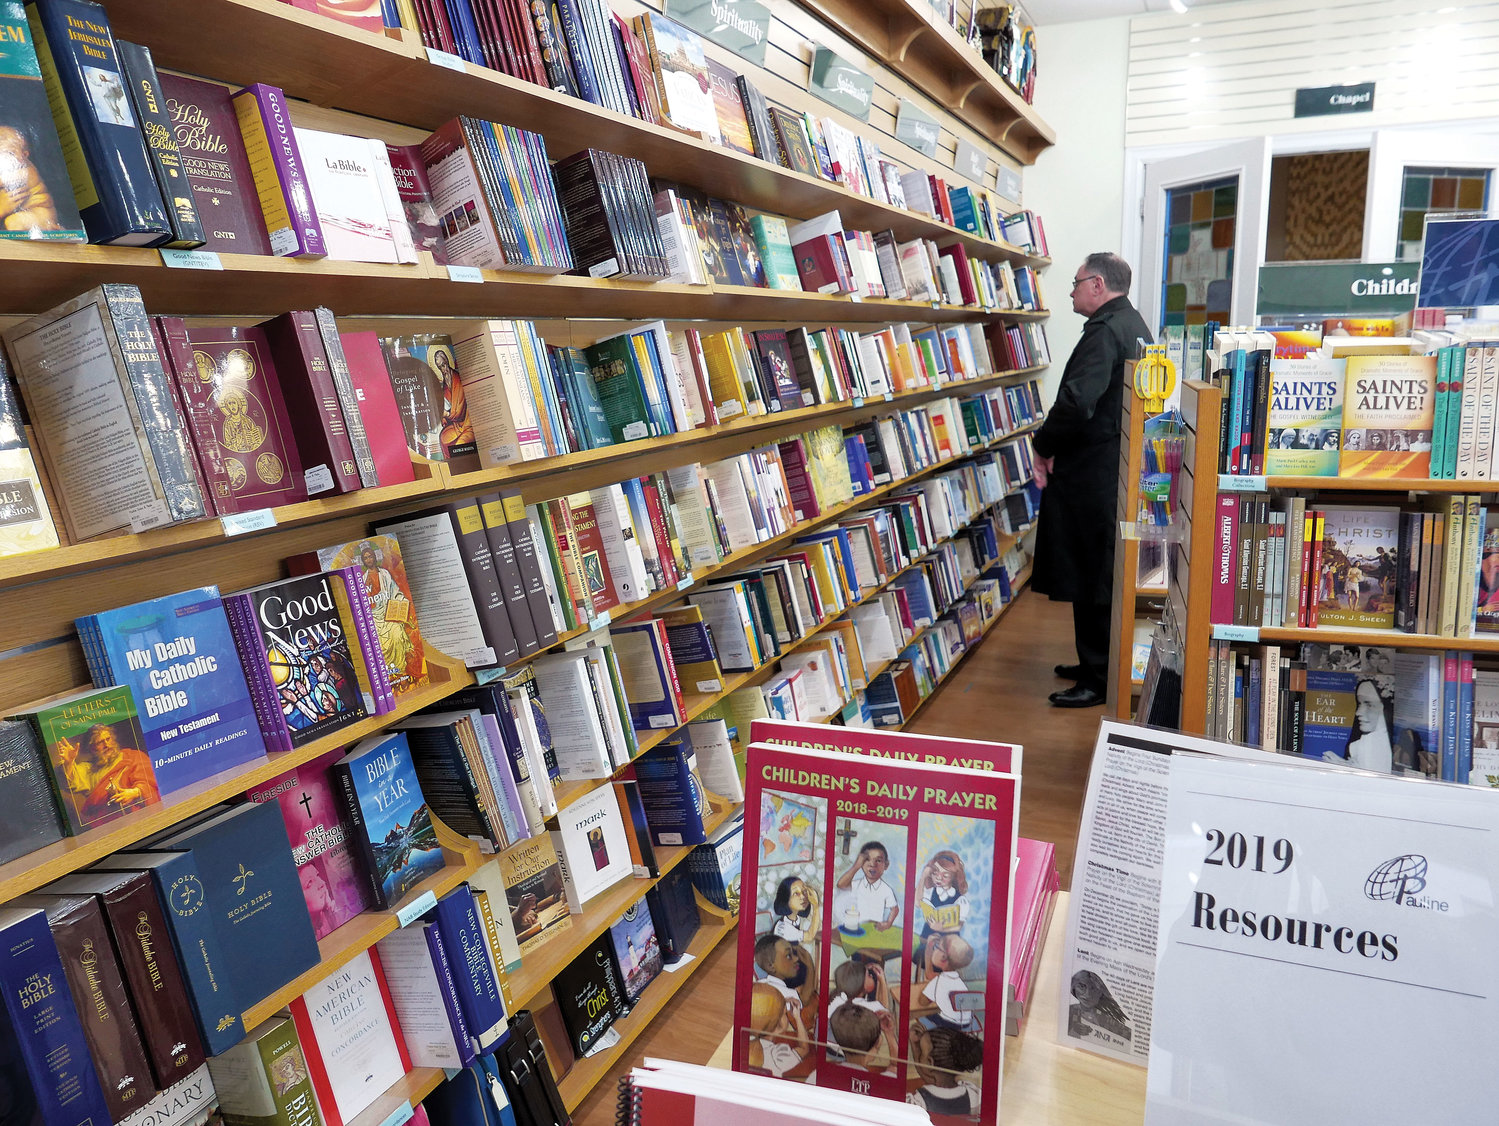 A patron browses selections stacked on neatly lined shelves. The center, operated by the Daughters of St. Paul, moved to its new location at 115 E. 29th St., between Park and Lexington avenues, in April 2017. The sisters invite visitors to attend speaker events and workshops, and to pray in the Eucharistic Chapel.